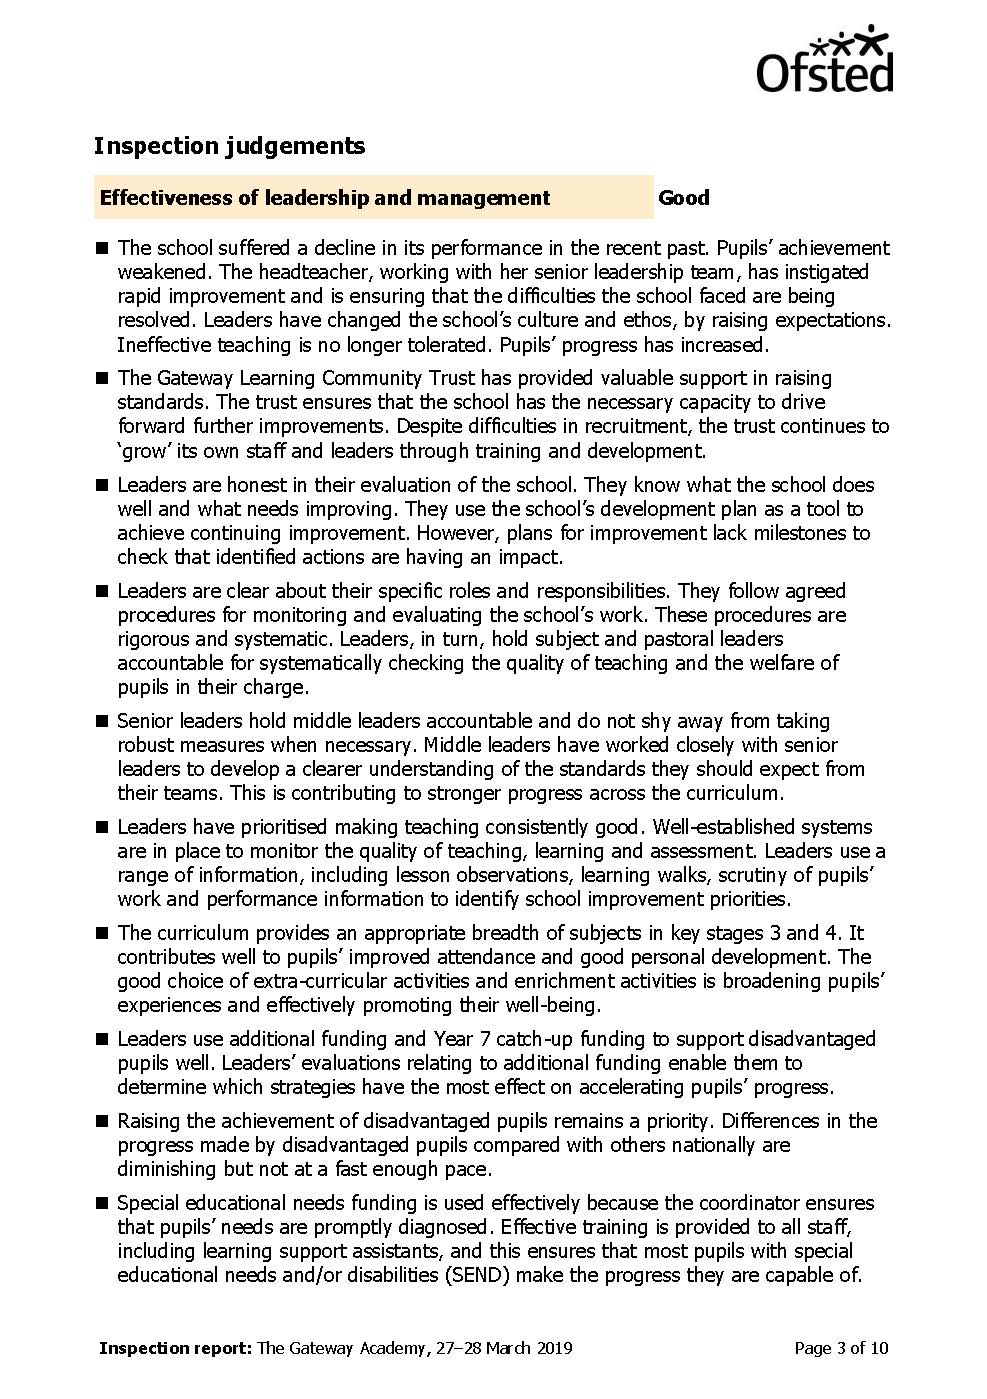 The Gateway Aacdemy Ofsted Report April 2019_Page_03